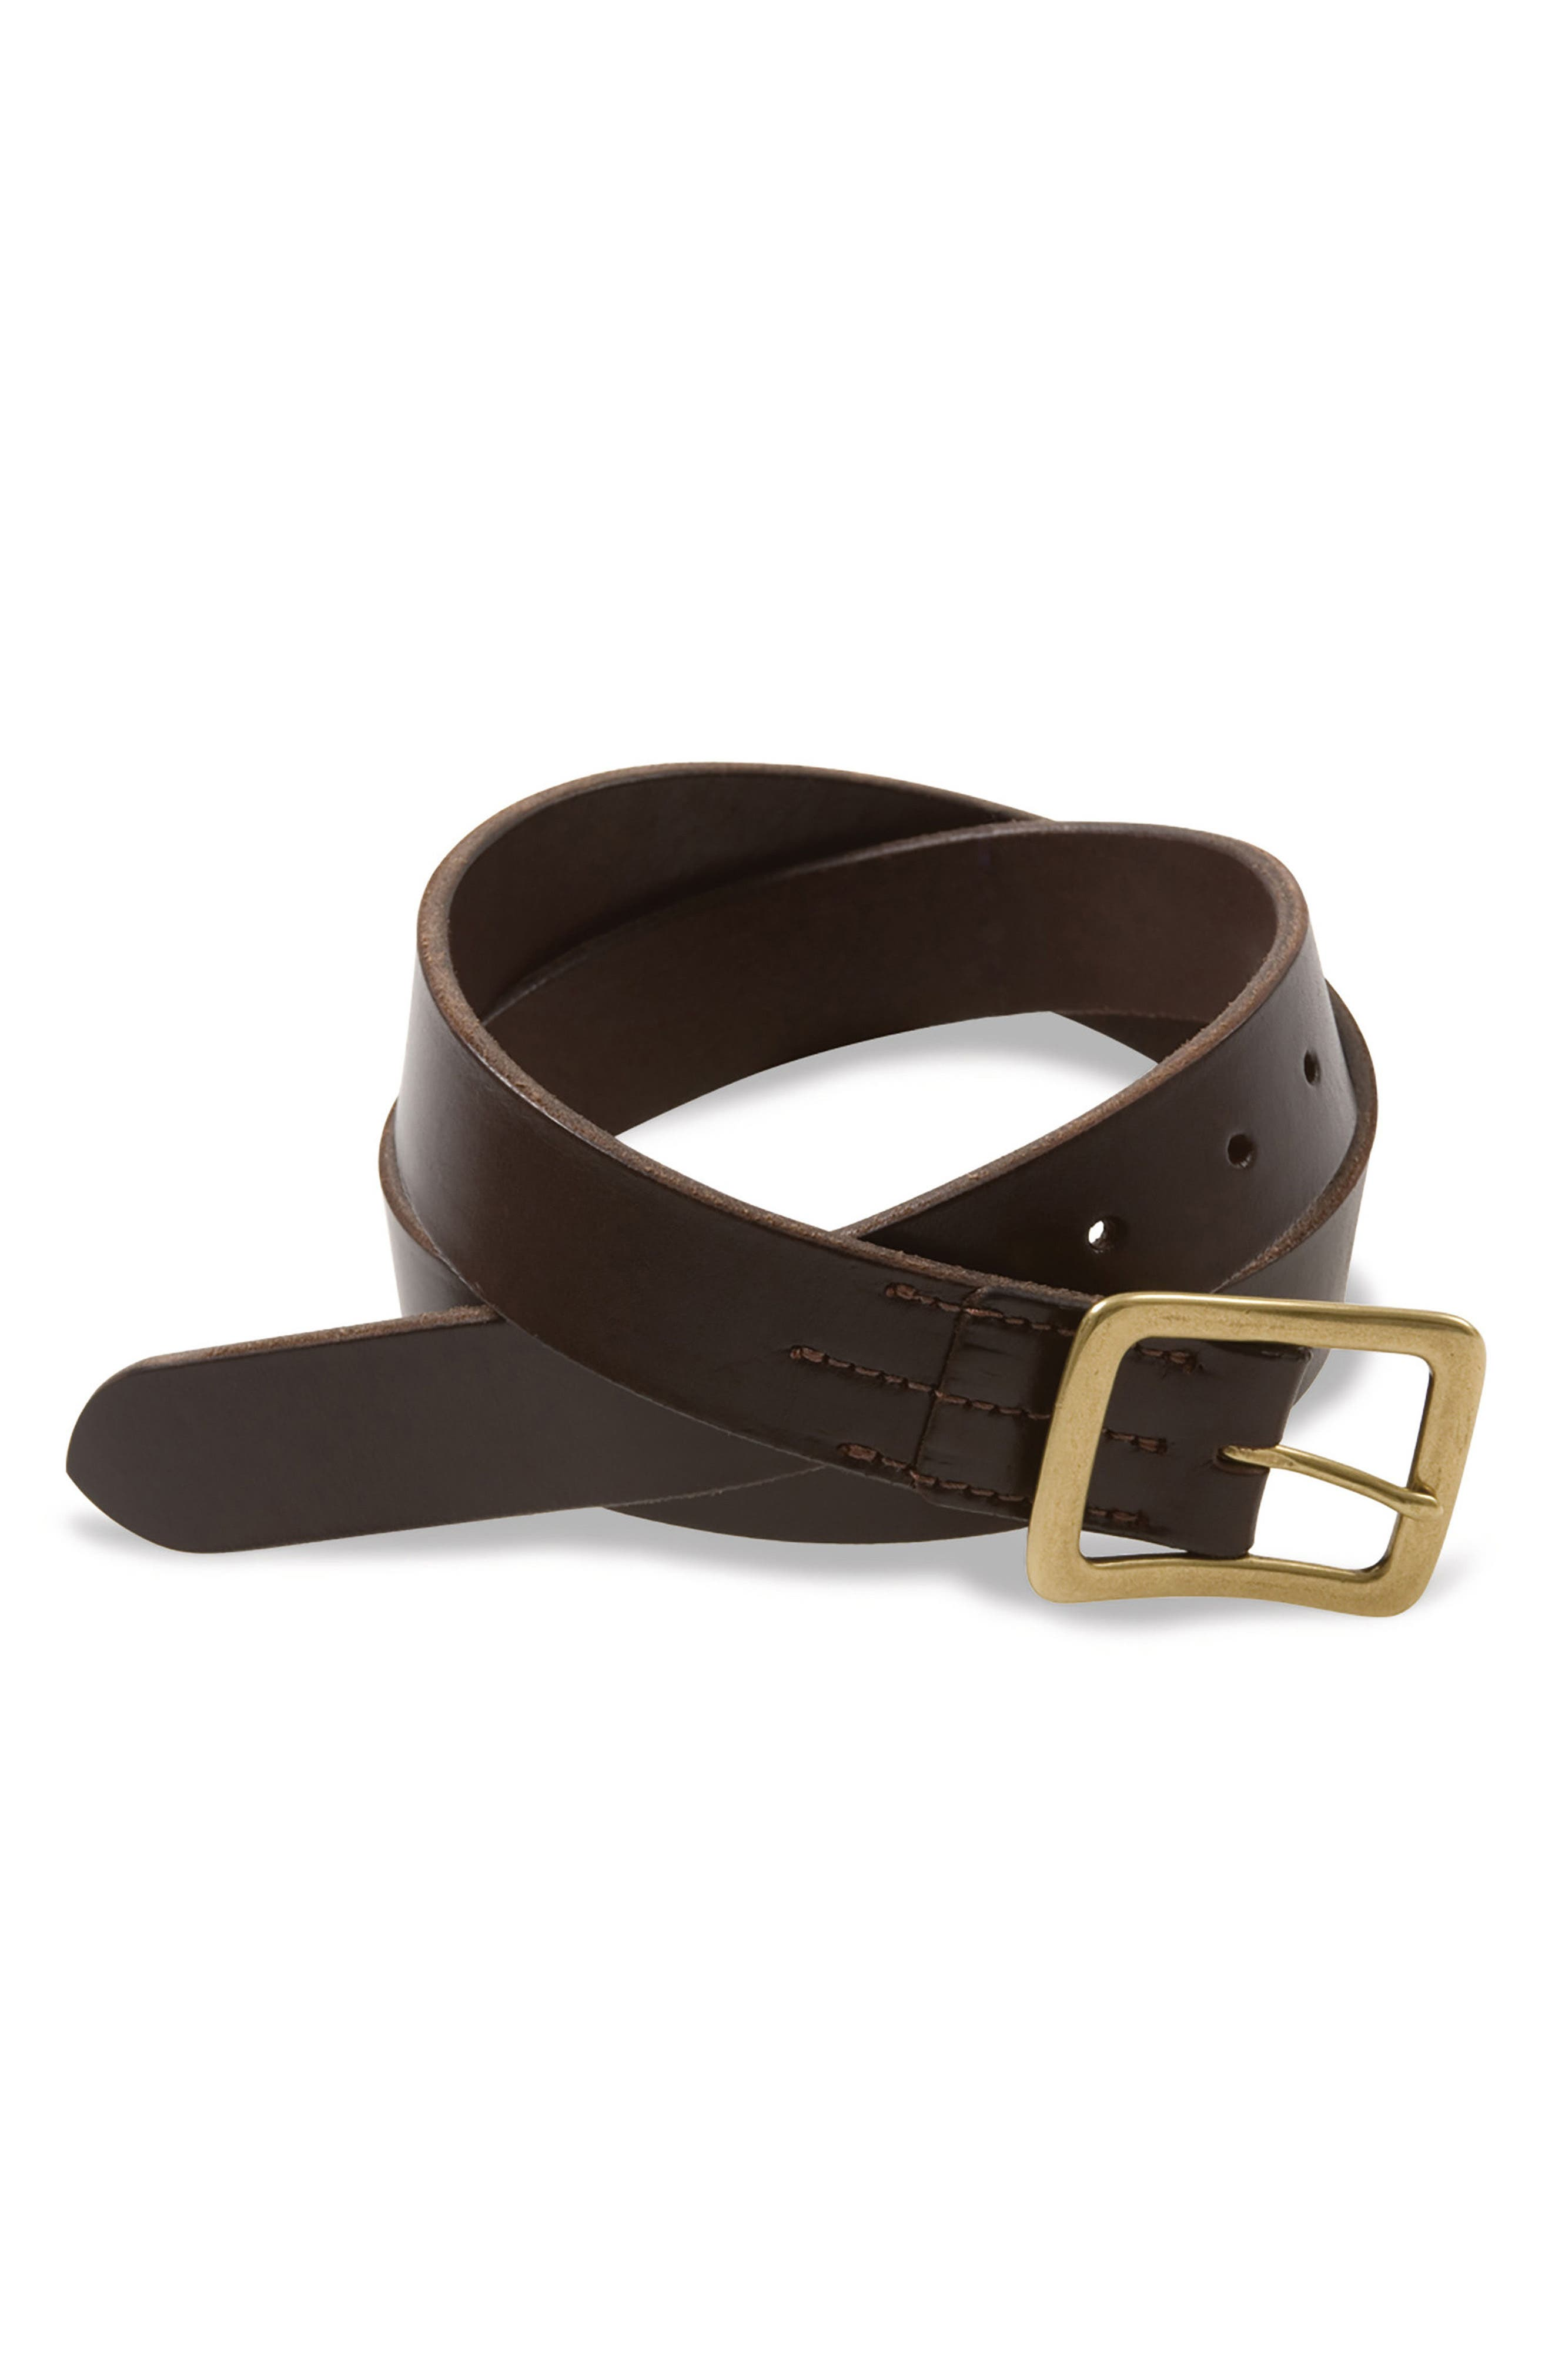 RED WING Leather Belt in Dark Brown English Bridle